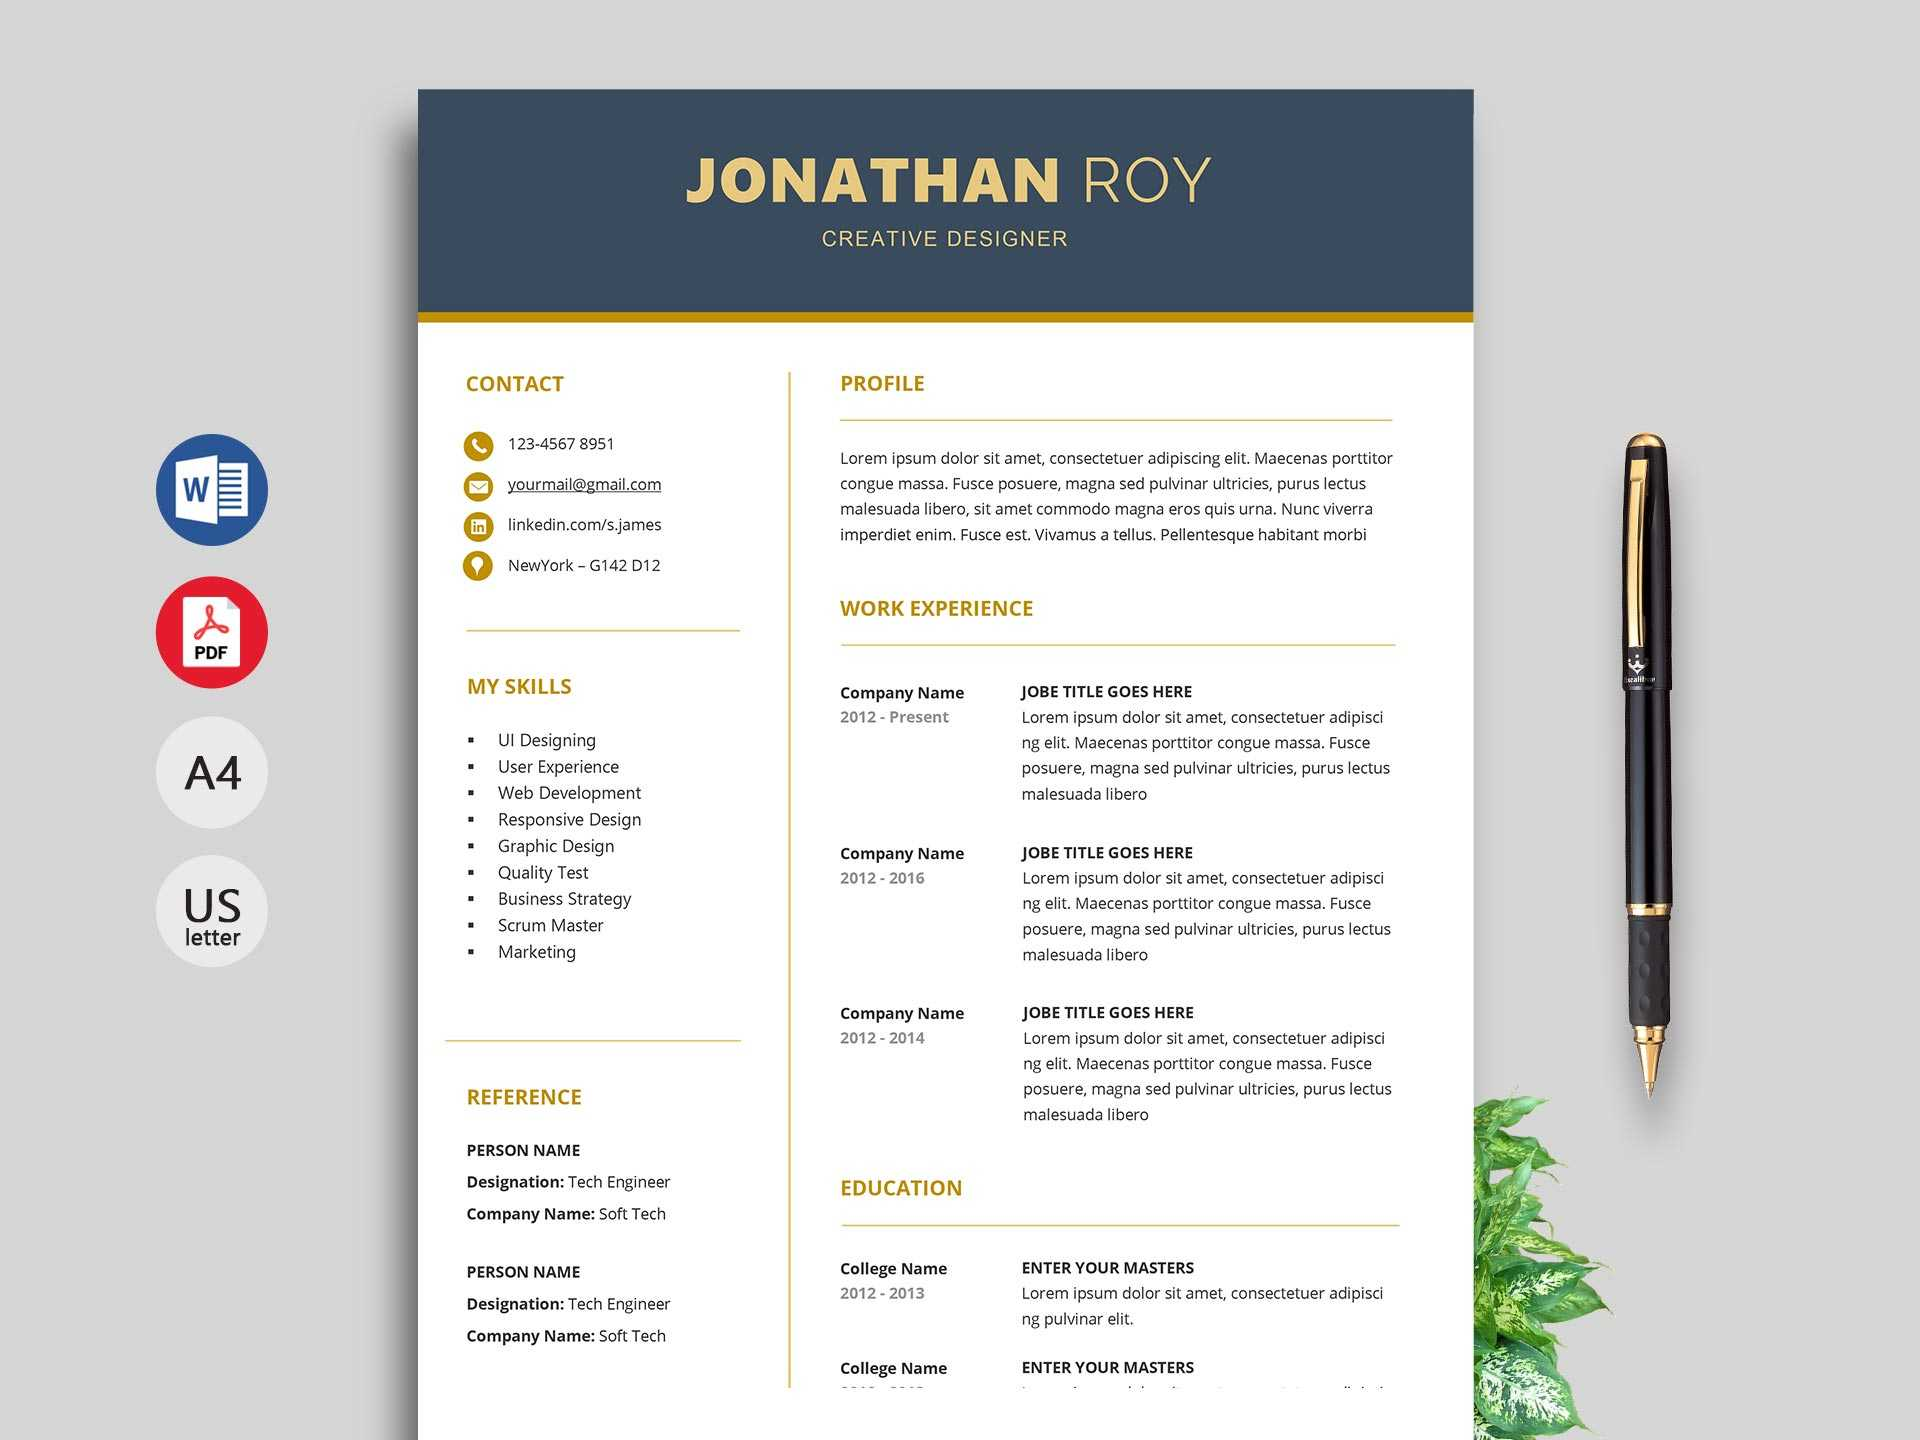 Free Simple Resume & Cv Templates Word Format 2020 | Resumekraft In Free Downloadable Resume Templates For Word